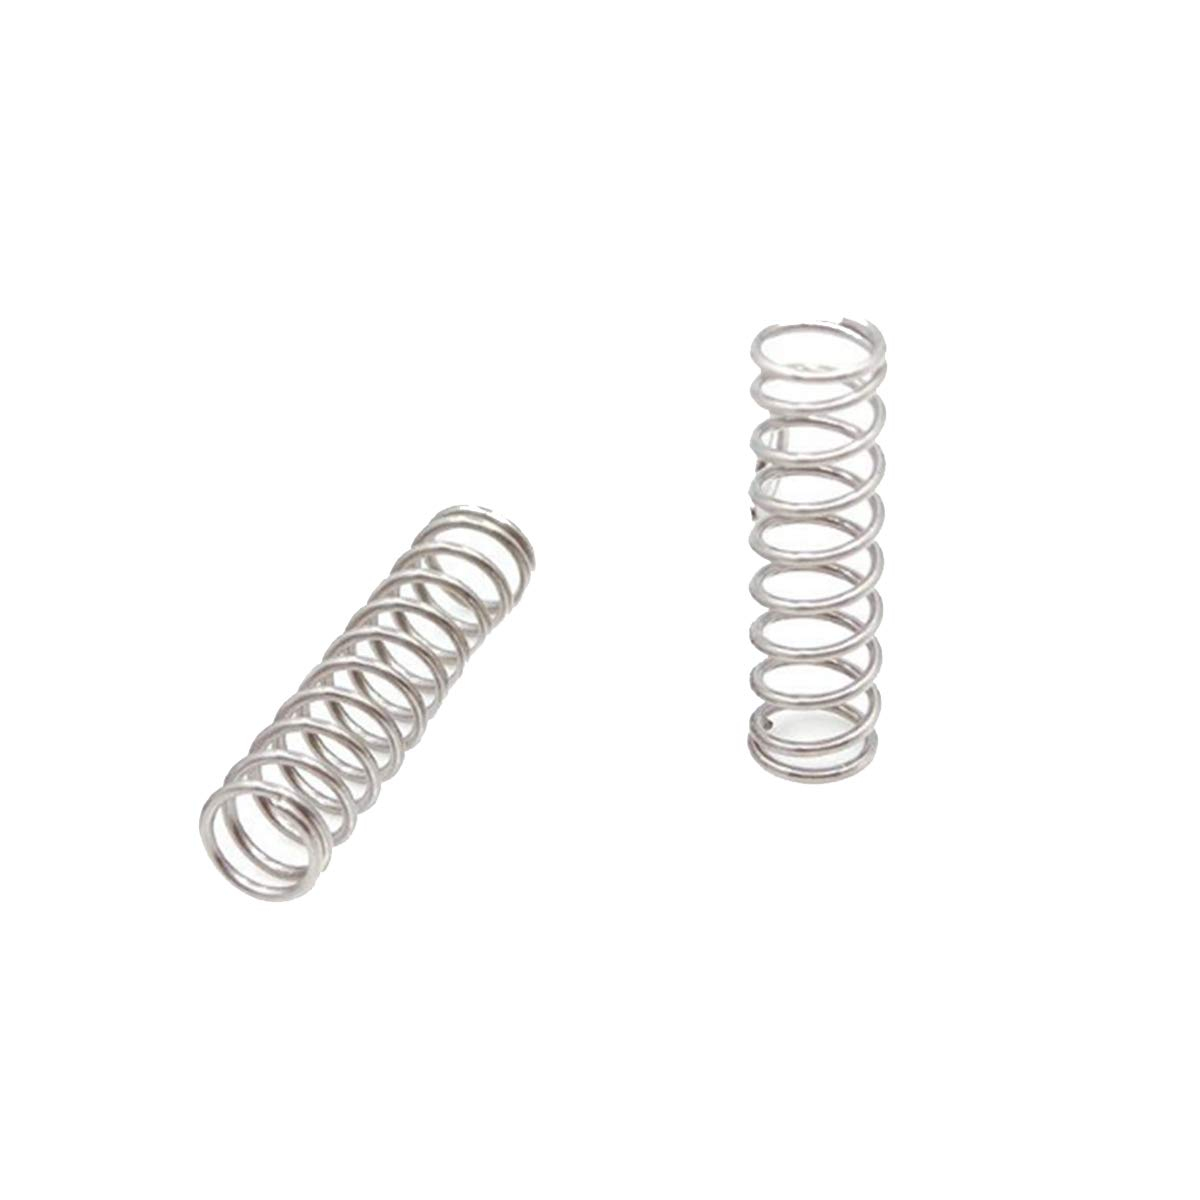 15pcs 304 Stainless Steel Compression Spring 0.8mmx12mmx50mm Spring Long Return Spring